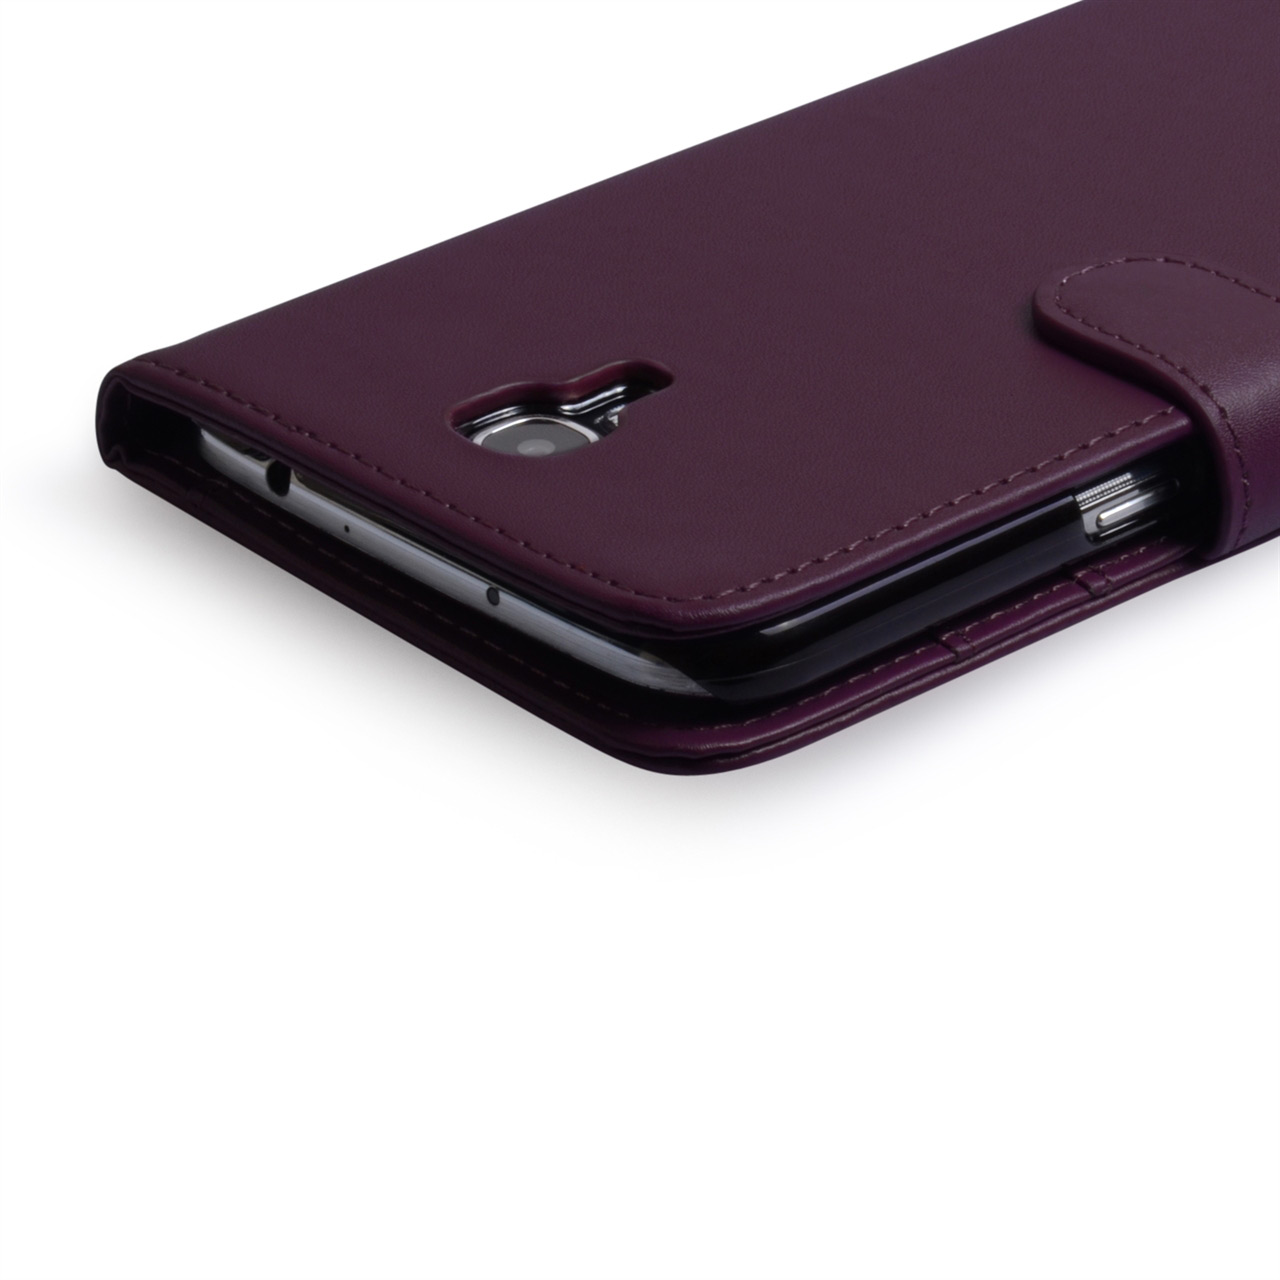 YouSave Samsung Galaxy Mega 6.3 Leather Effect Wallet Case - Purple